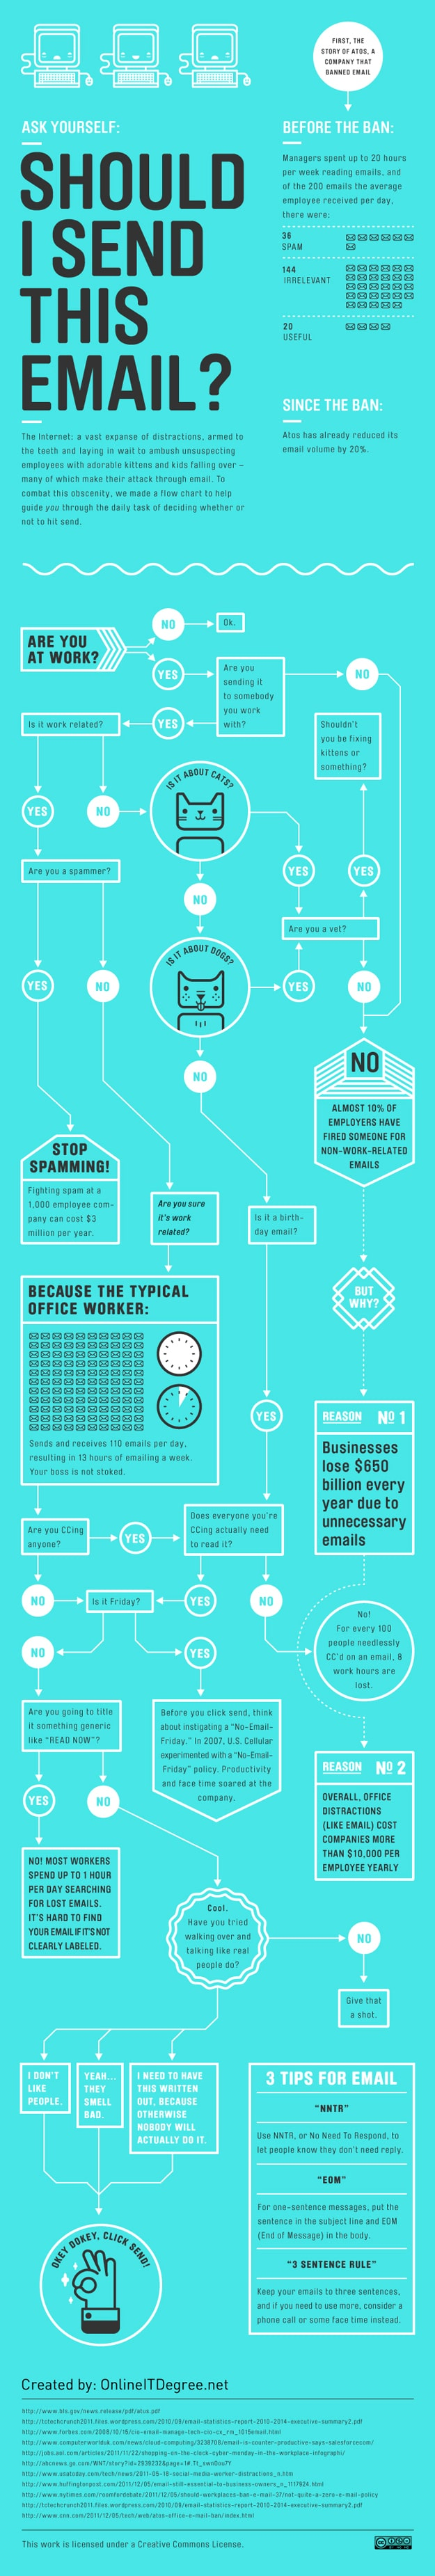 Email Overload: Should You Really Send That Email? [Infographic]